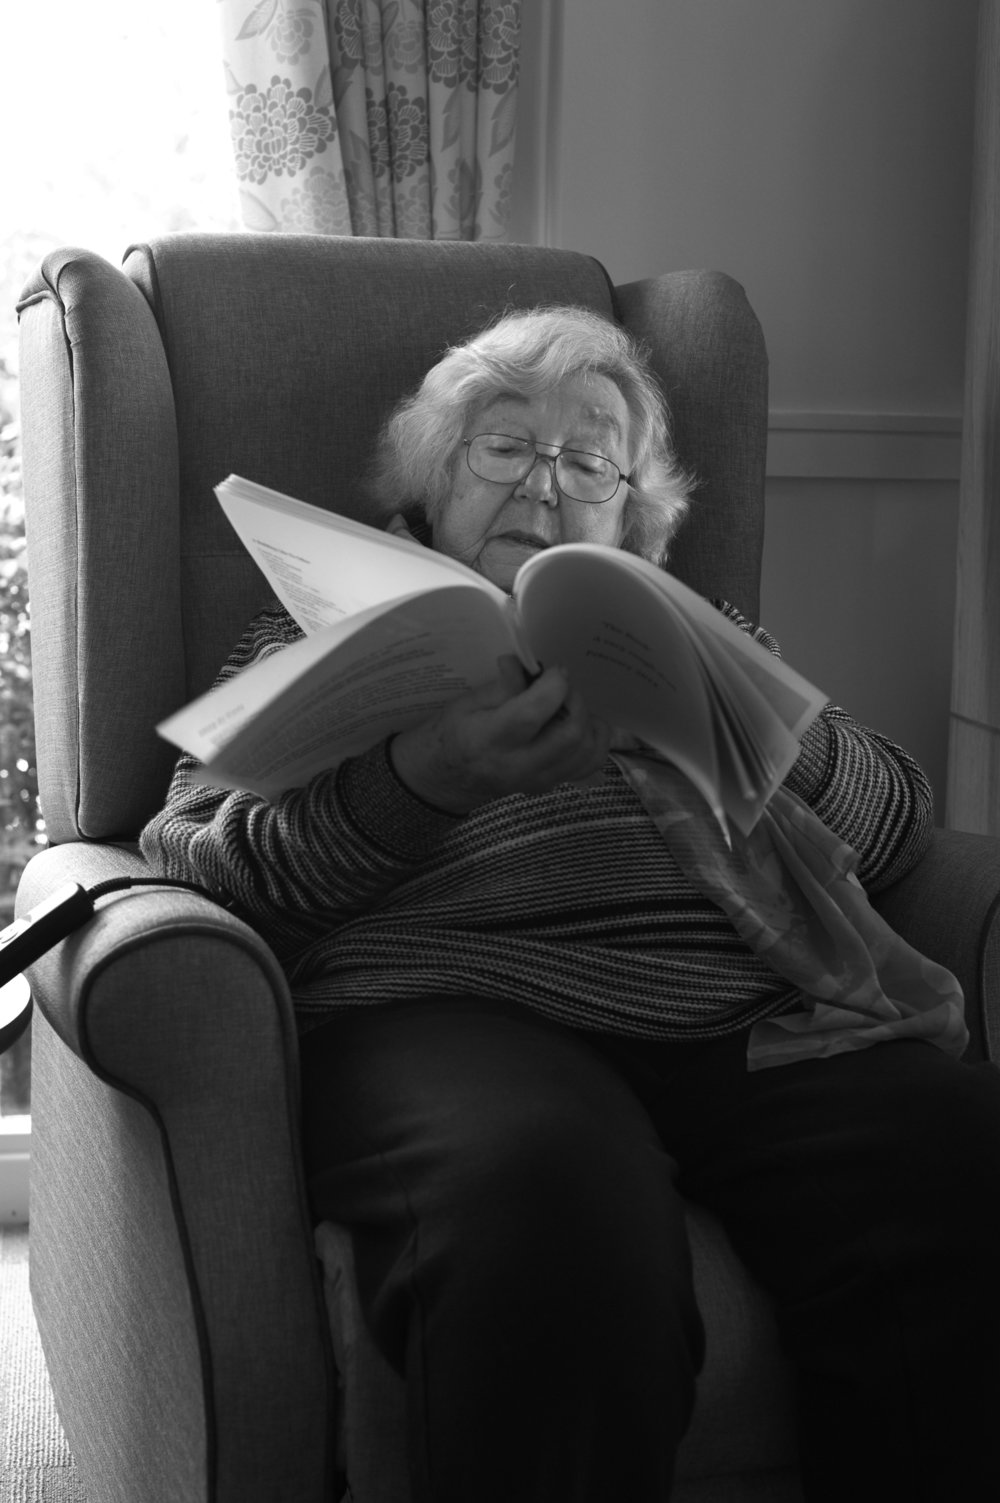 participant in arts and health project 'Being Here' at St Giles Palliative Care Hospice. Photo credit: Ming de Nasty